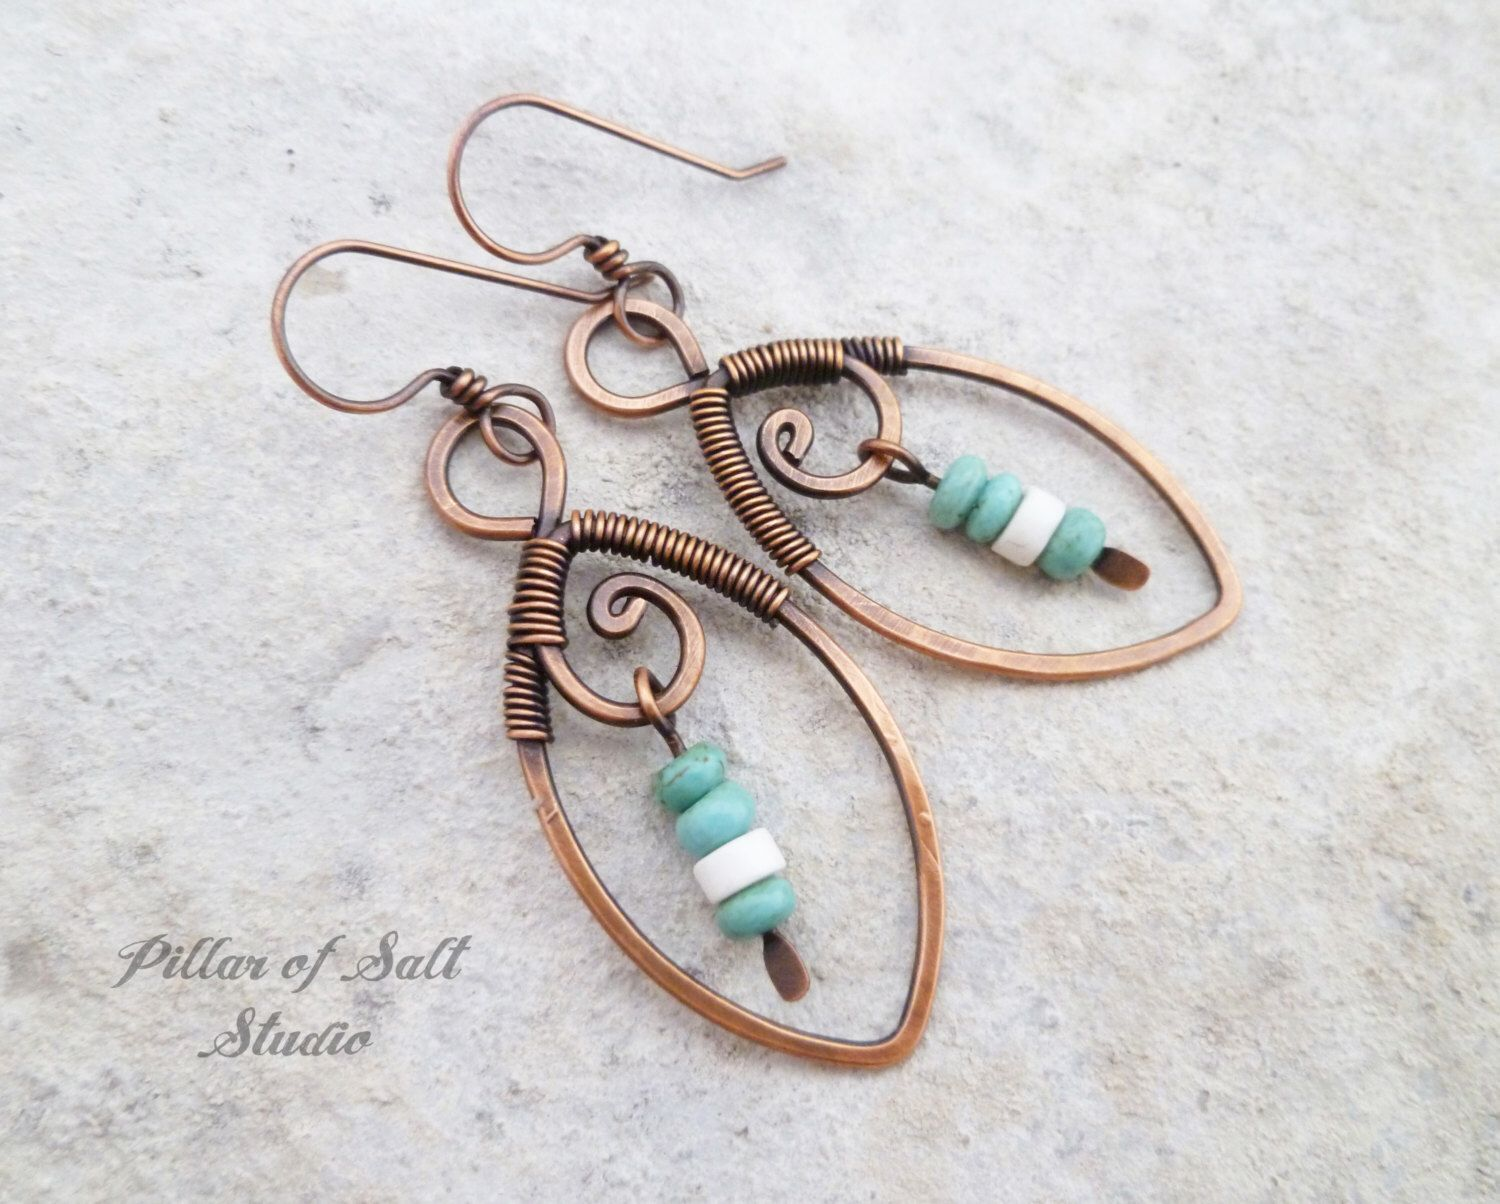 Pin by Lilly Eichler on Jewelry   Pinterest   Wire wrapping, Wire ...